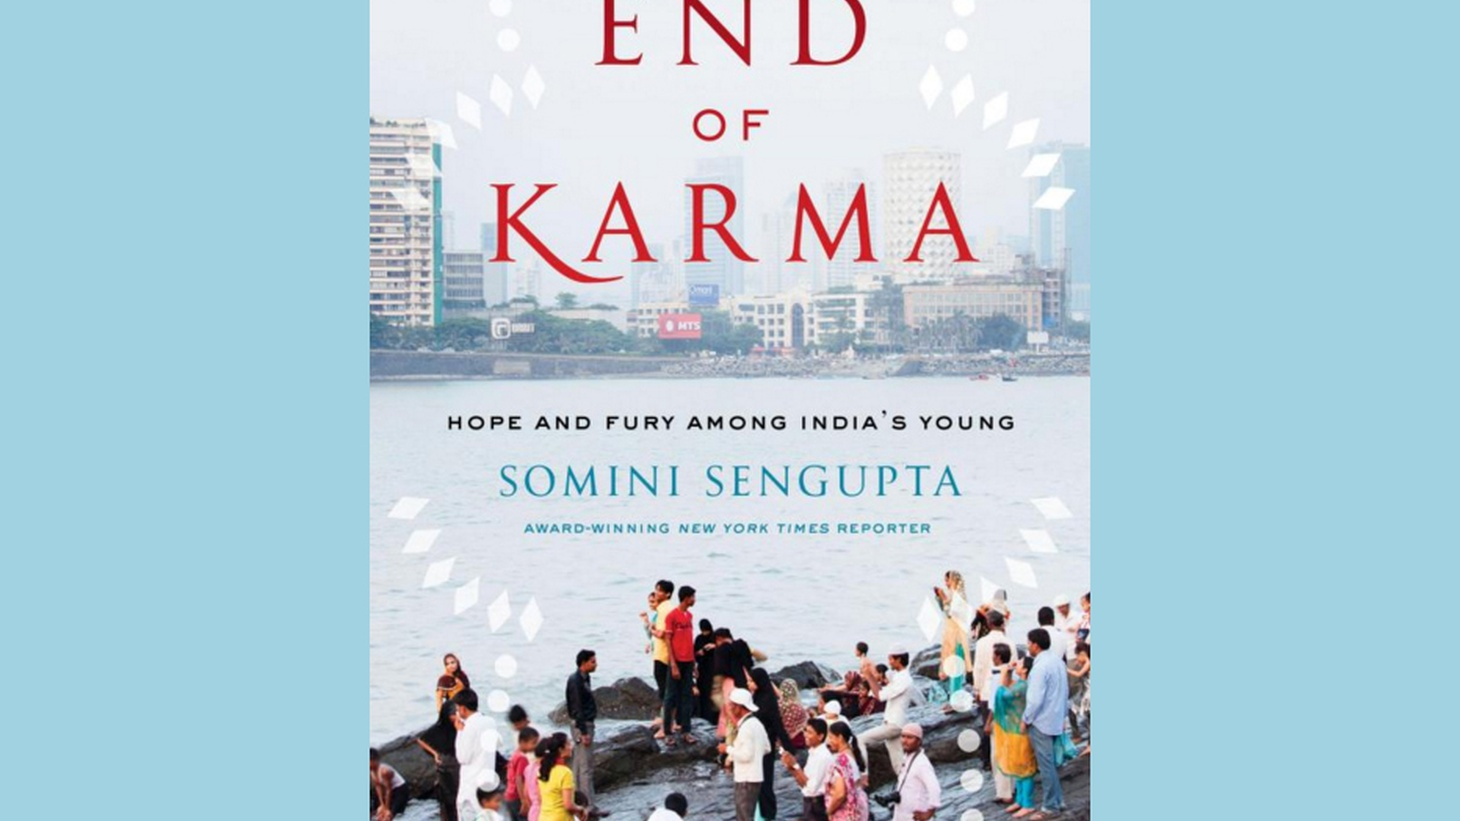 The world's largest democracy is changing fast, but India's caste system still prevails in many ways. Somini Sengupta, who covers the United Nation for the New York Times, has lived in both the United States and India, and considers herself part of both countries.